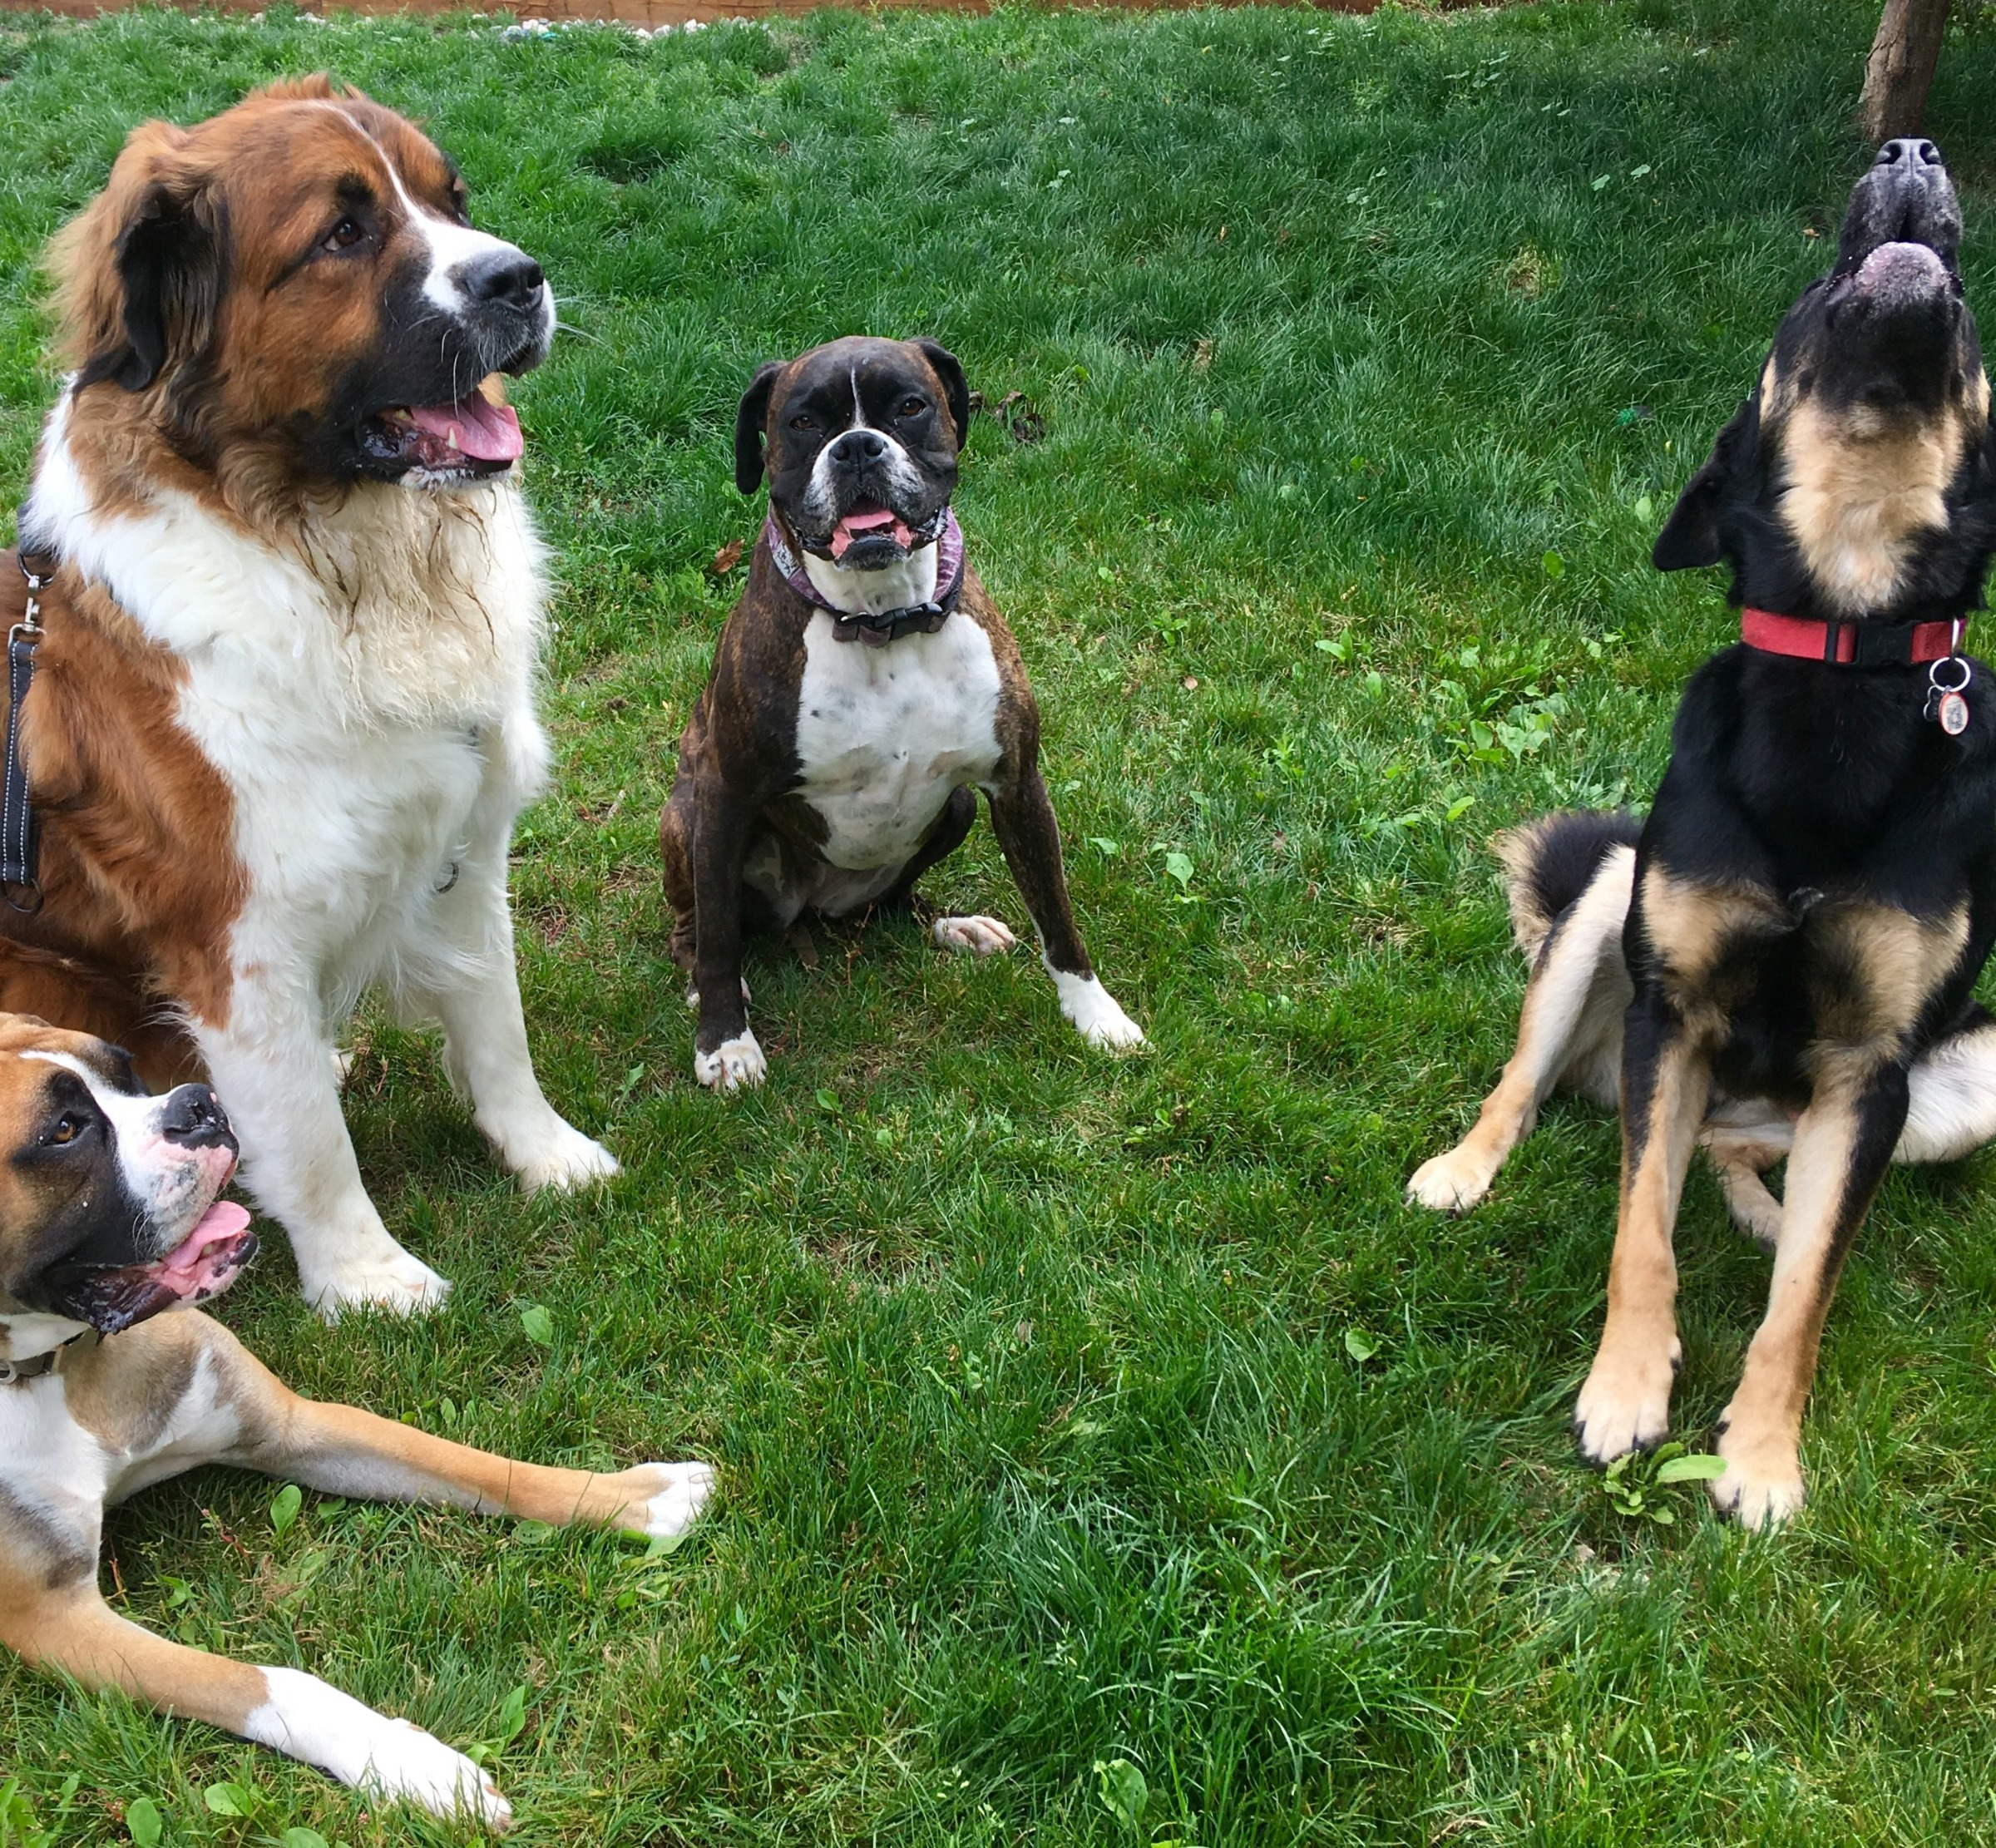 Four dogs sit in a semi-circle on grass, one howls.